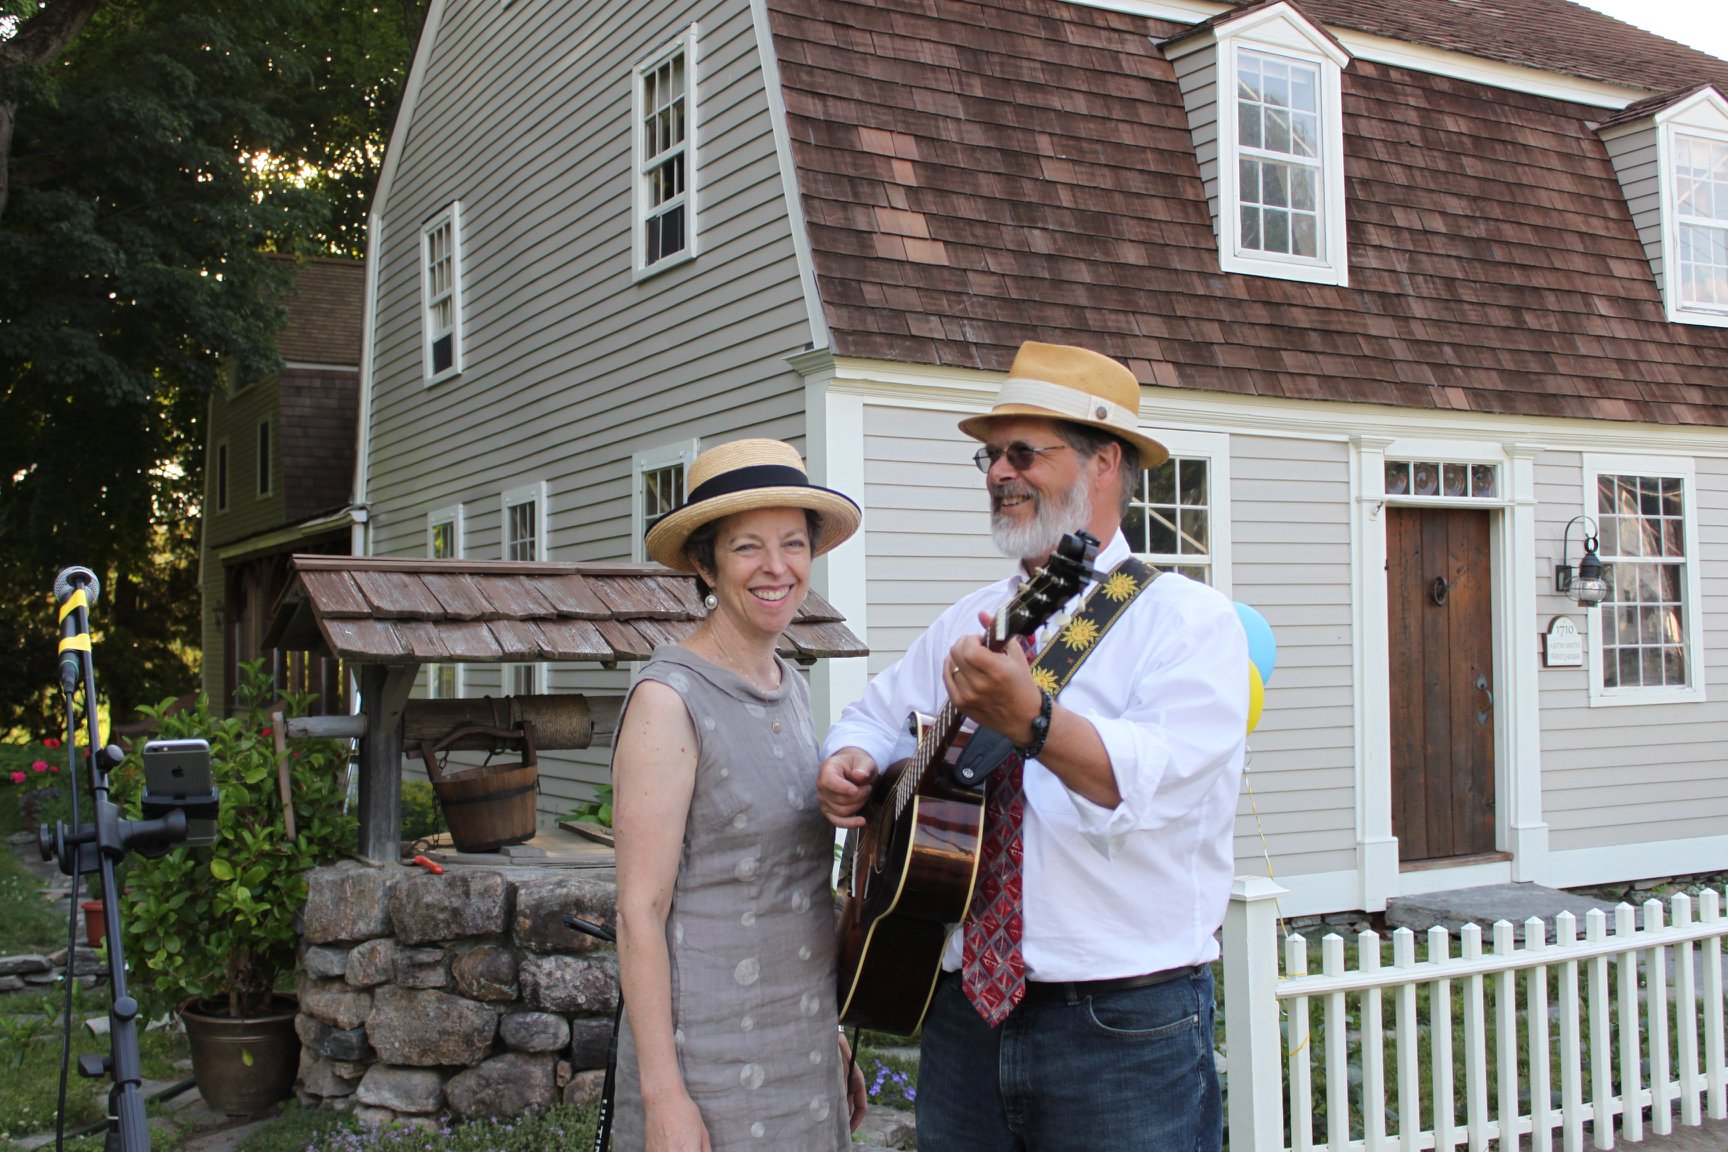 Gilead Road: Soft Rock and Folk on Lyme Street, Make Music 2018, Photo by Cheryl Poirier